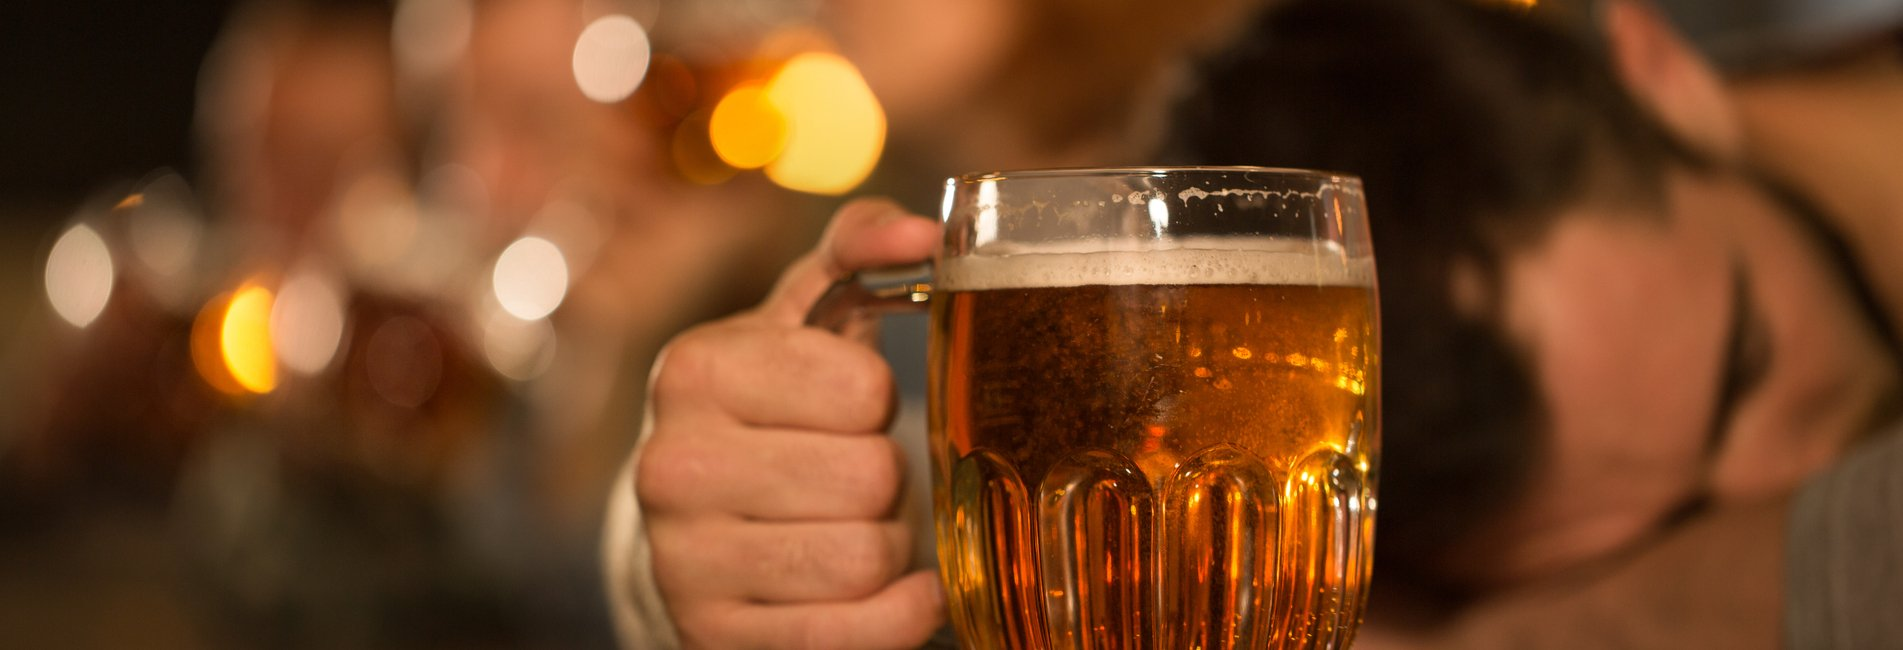 Alcohol and Blacking Out: How Are They Linked? Resurgence - A man is passed out at the bar with his head on the bar counter as he holds his beer mug, showing the dangerous link between alcohol and blacking out.